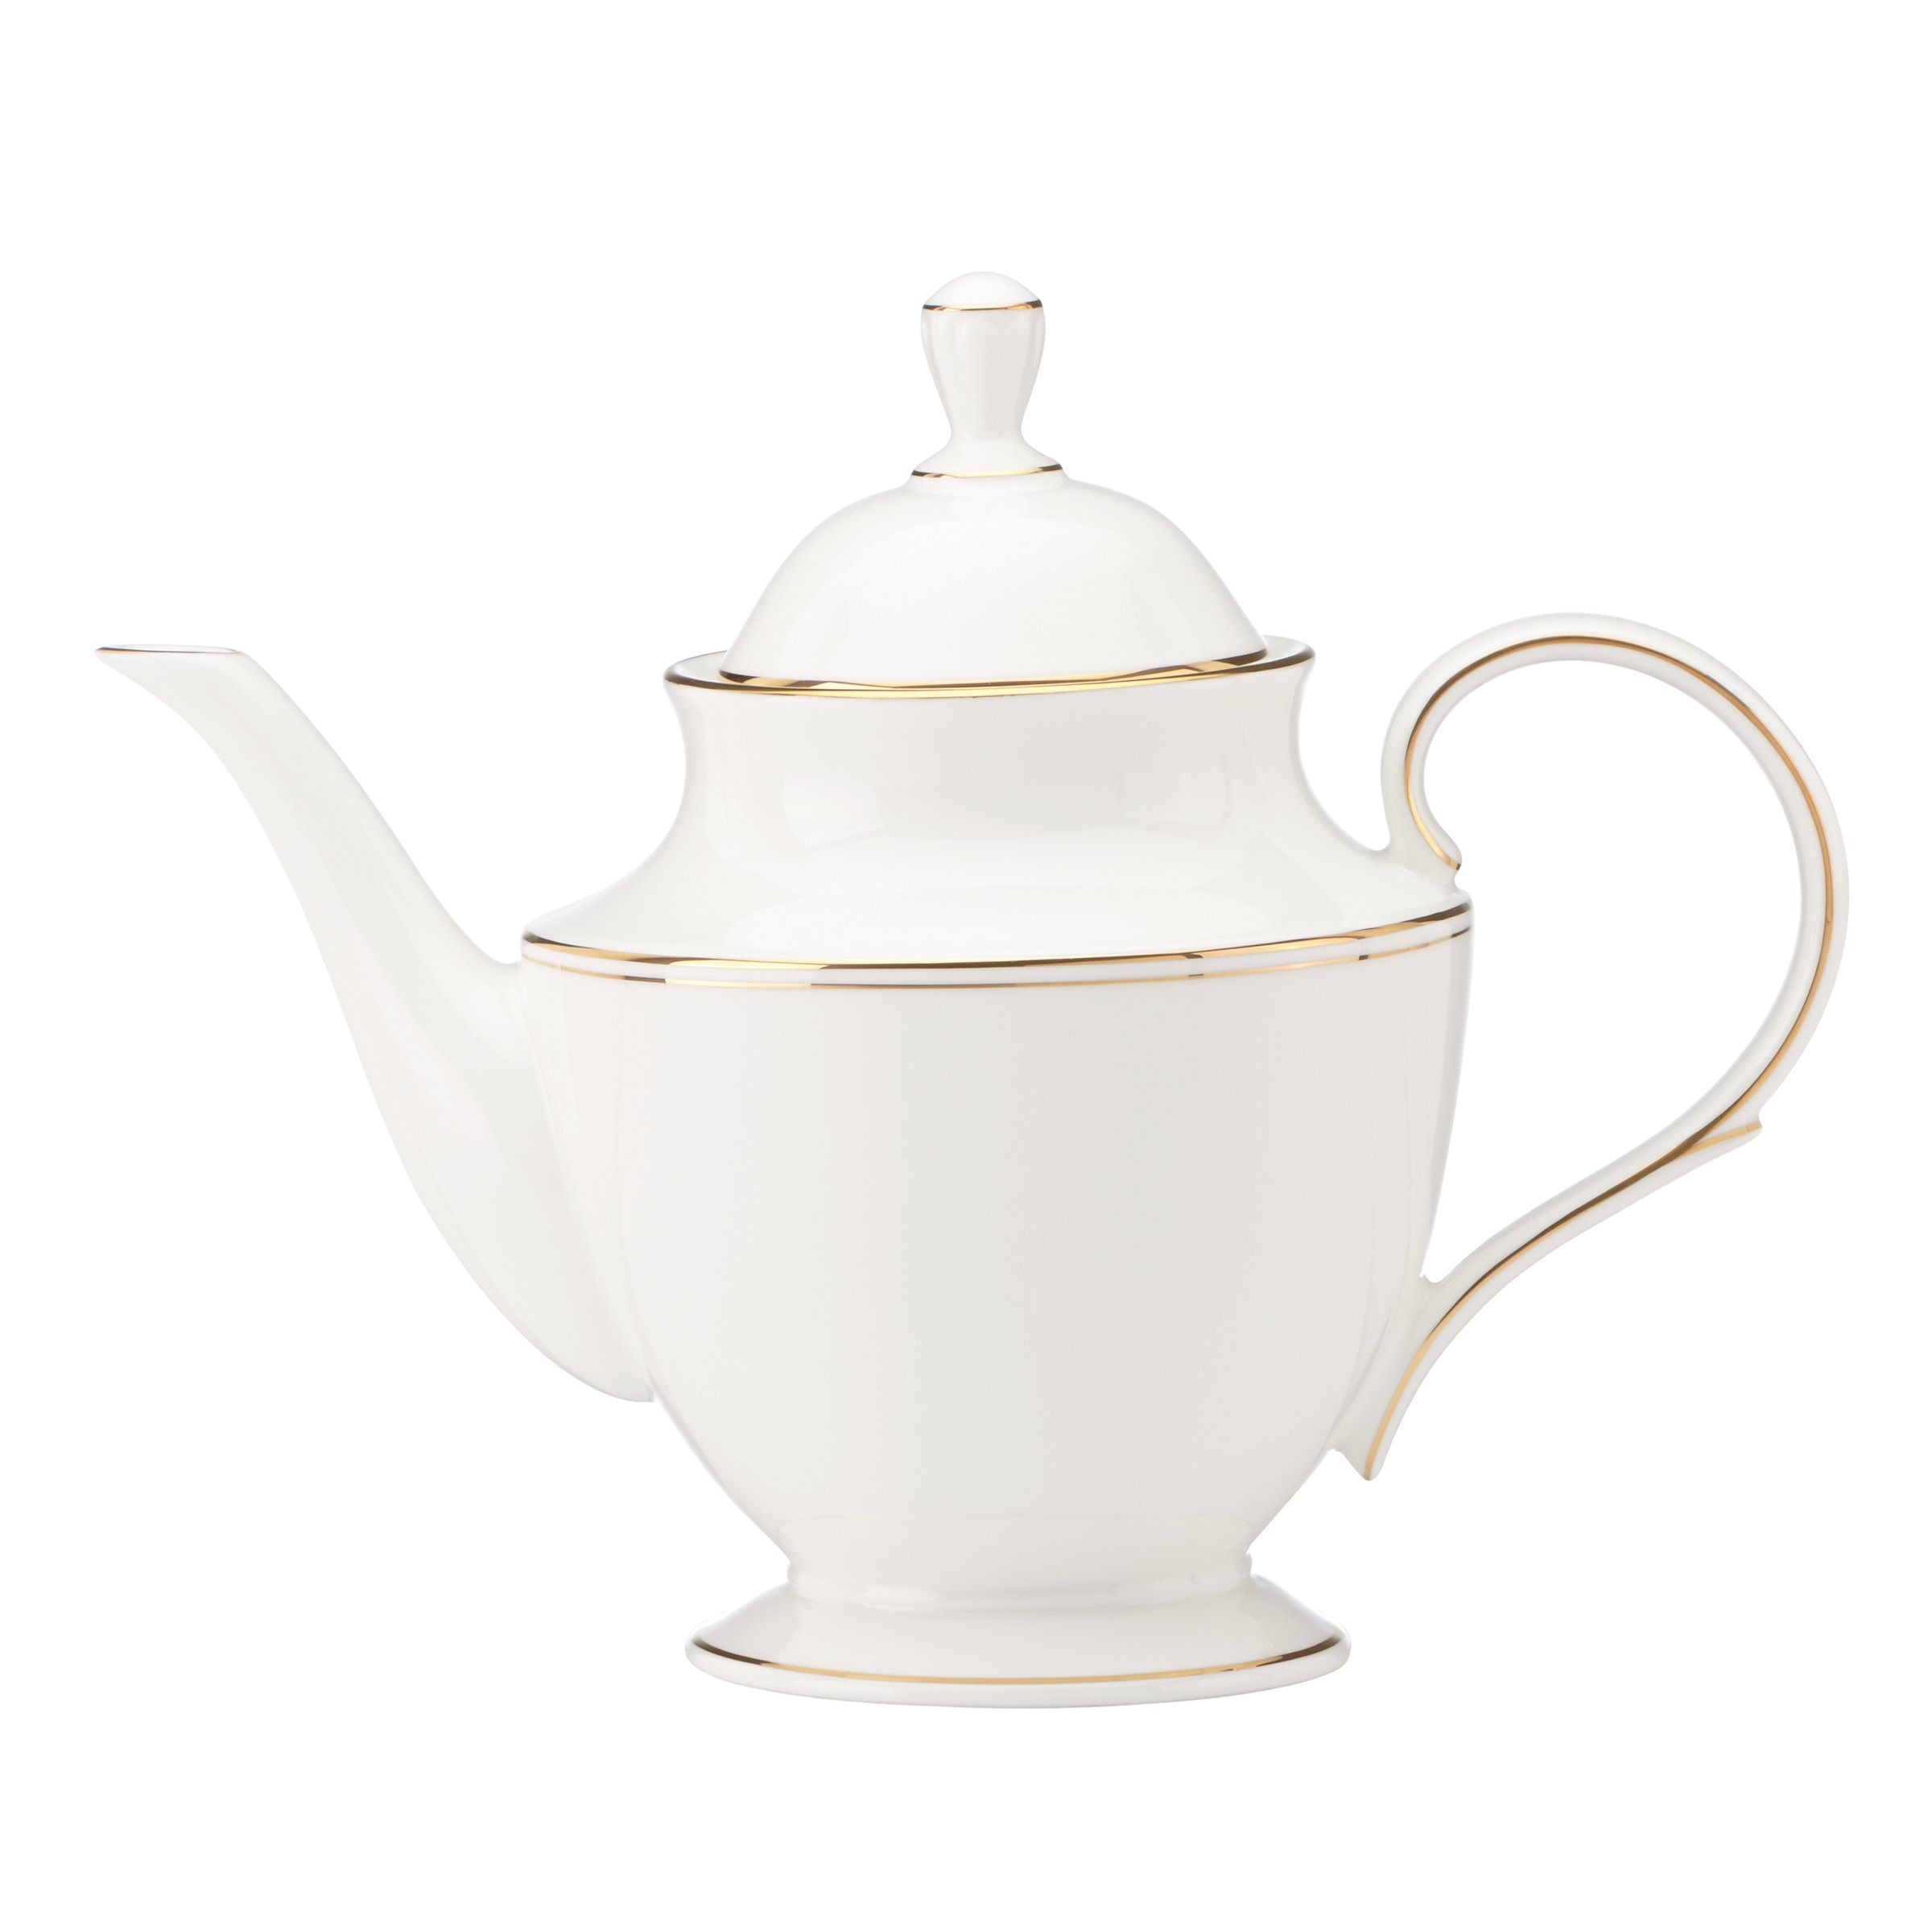 Enjoy your drink when you use this Lenox Federal Gold Teapot. Crafted of Lenox bone china accented with 24 karat gold, this tea pot has a 40-ounce capacity. The design in white and gold creates a deli